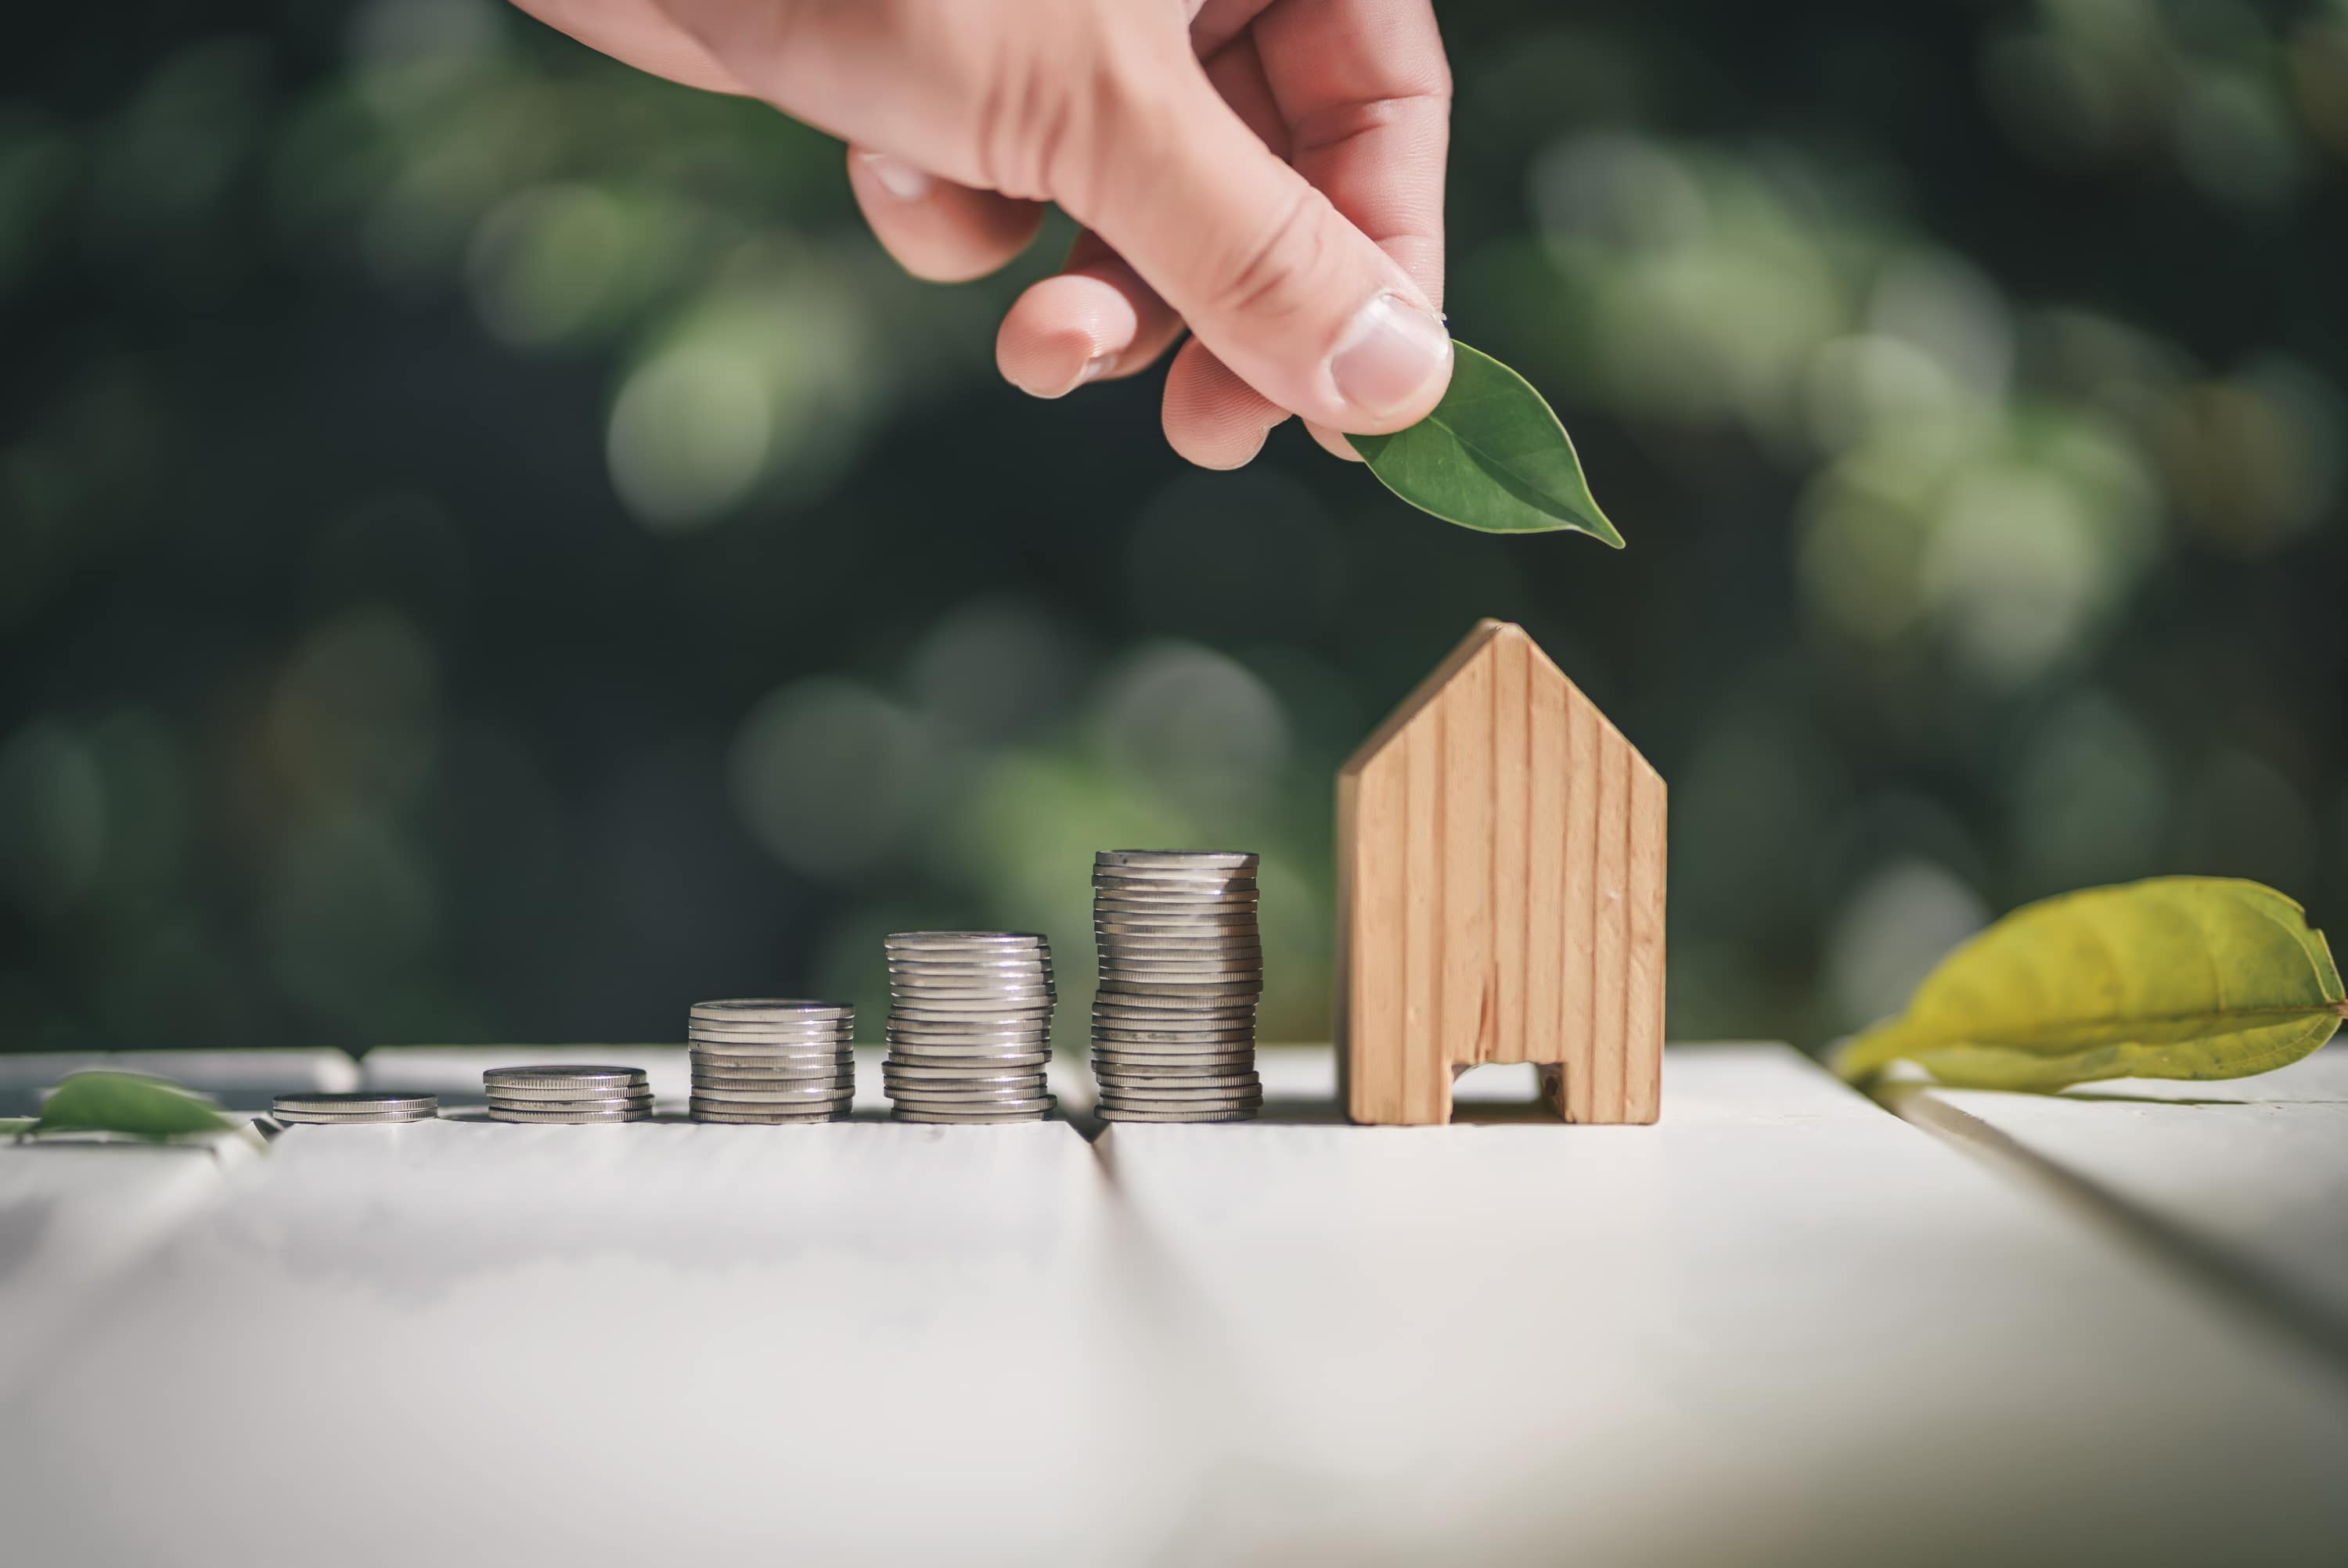 Some Small Purchases You Can Make Now to Save Money in the Long Run